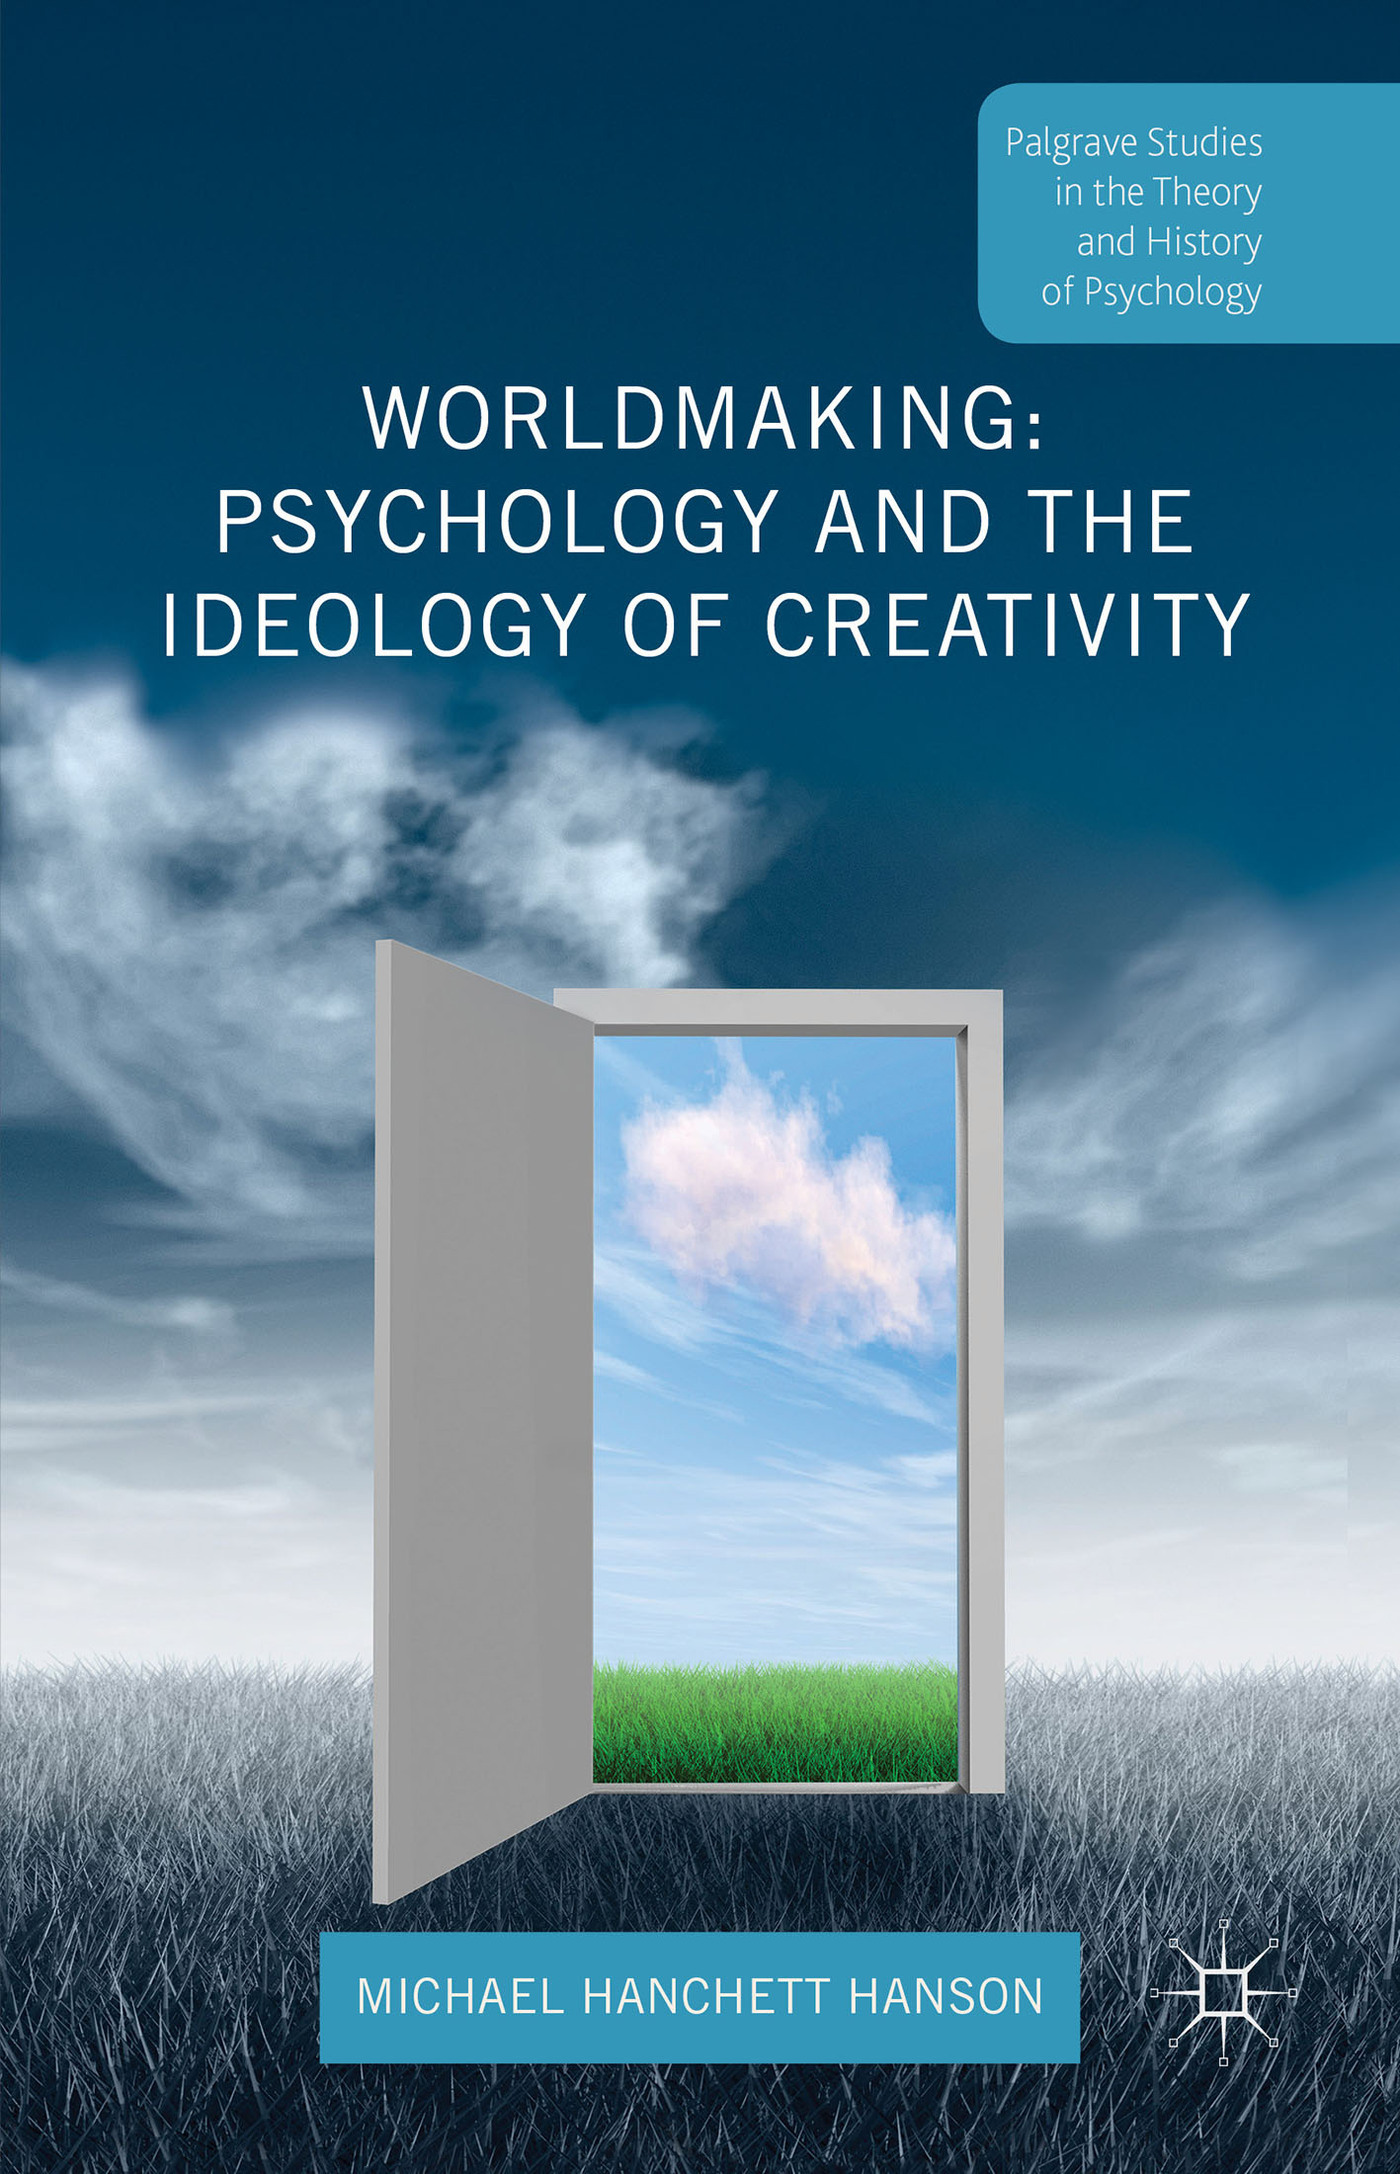 Worldmaking-Psychology-and-the-Ideology-of-Creativity